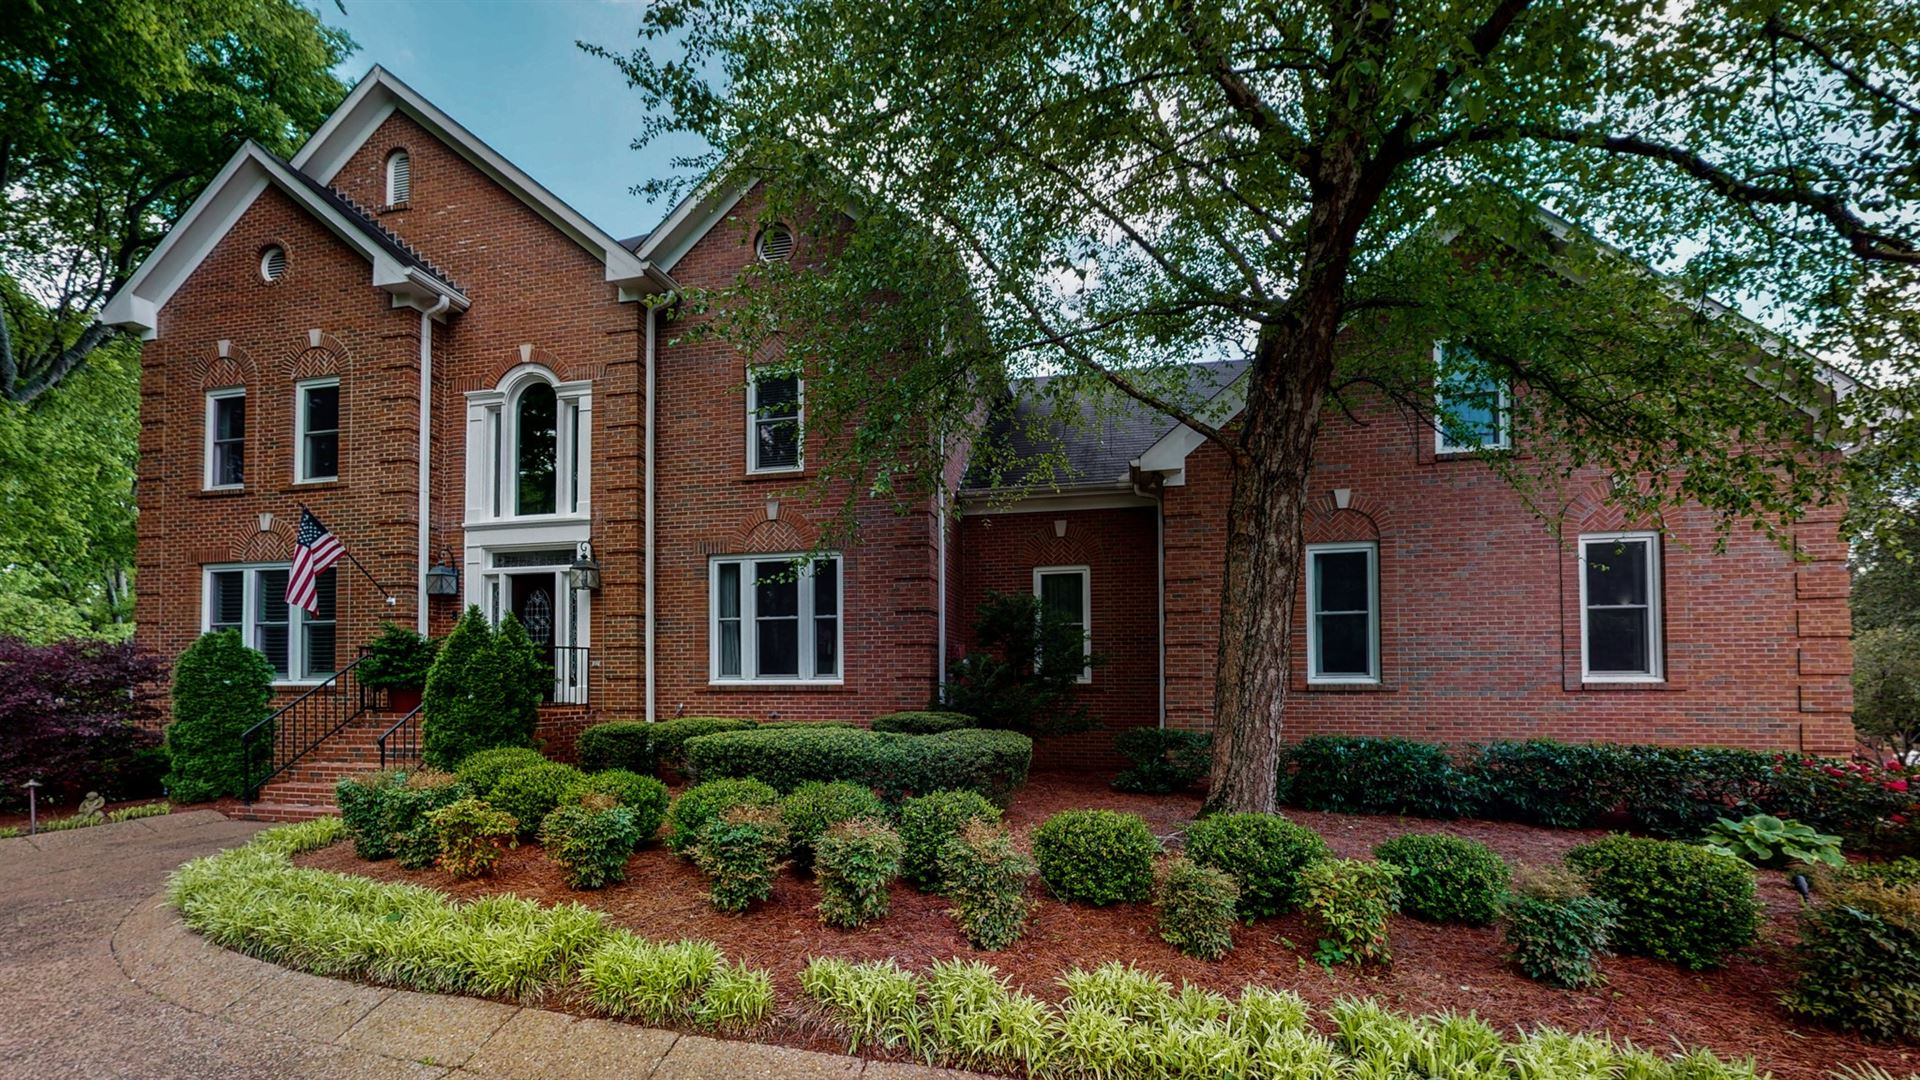 Photo of 9025 Brentmeade Blvd, Brentwood, TN 37027 (MLS # 2244350)